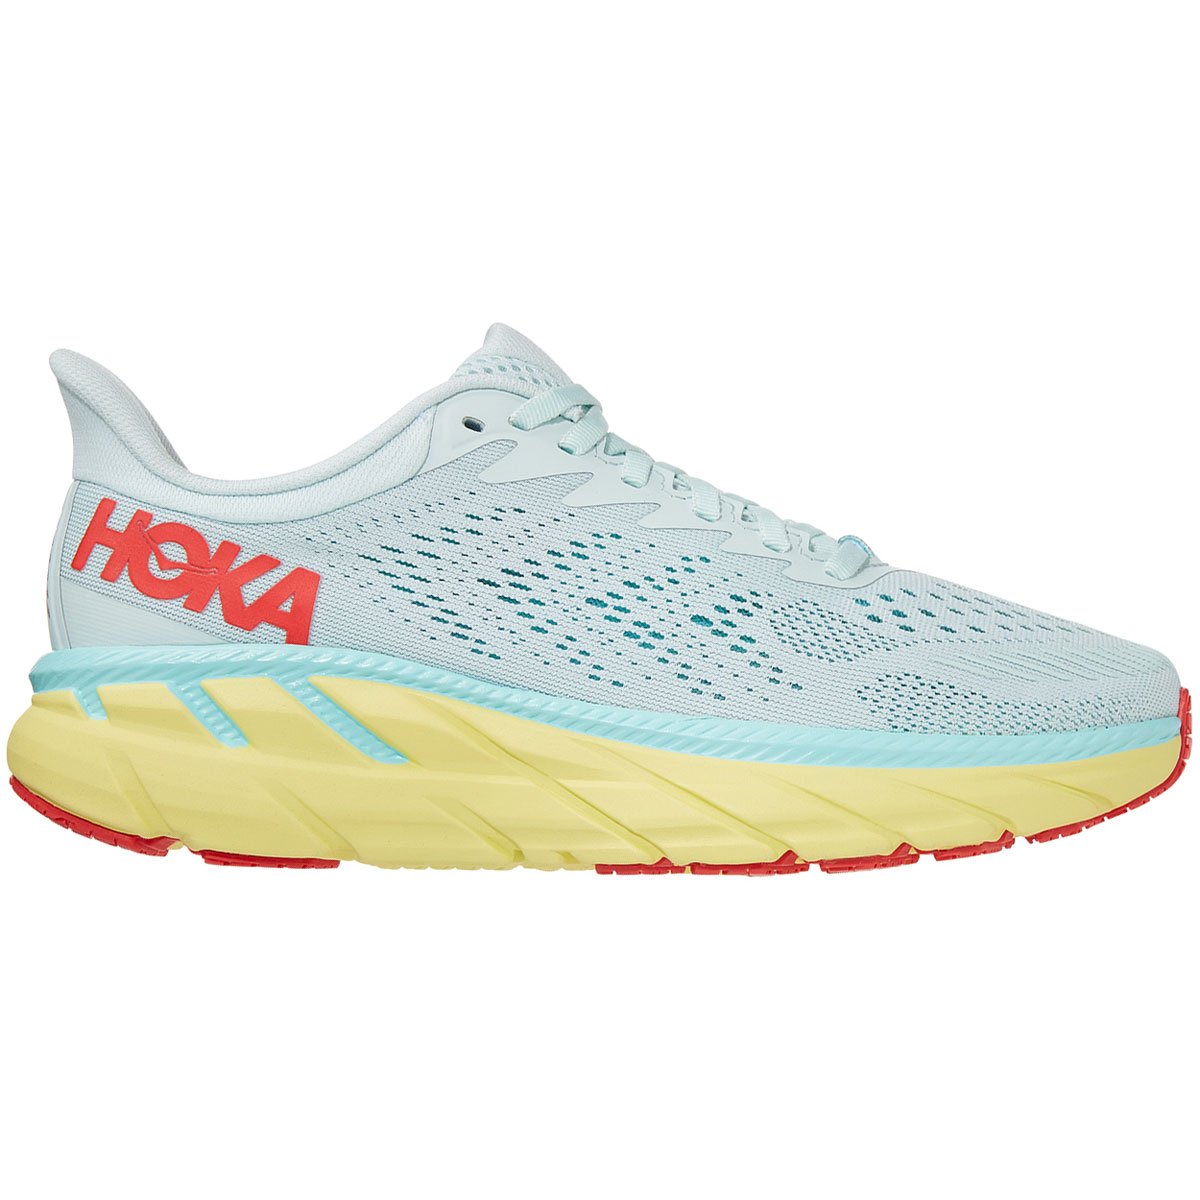 Women's Hoka One One Clifton 7 Running Shoe - Color: Morning Mist/Hot Coral - Size: 5 - Width: Regular, Morning Mist/Hot Coral, large, image 1